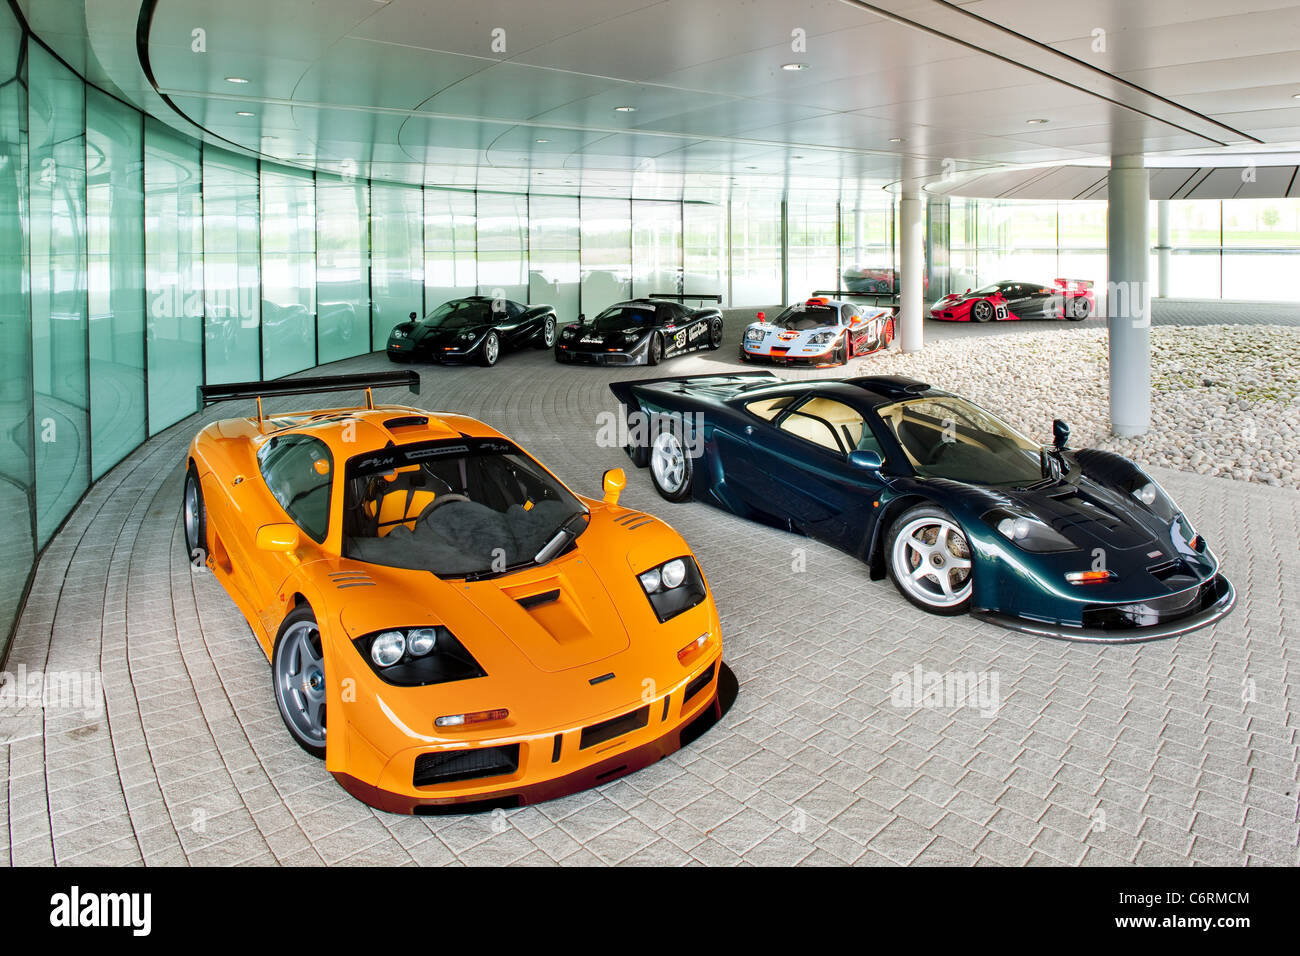 mclaren f1 celebrates the big 2-0 mclaren's f1 is 20 years old this